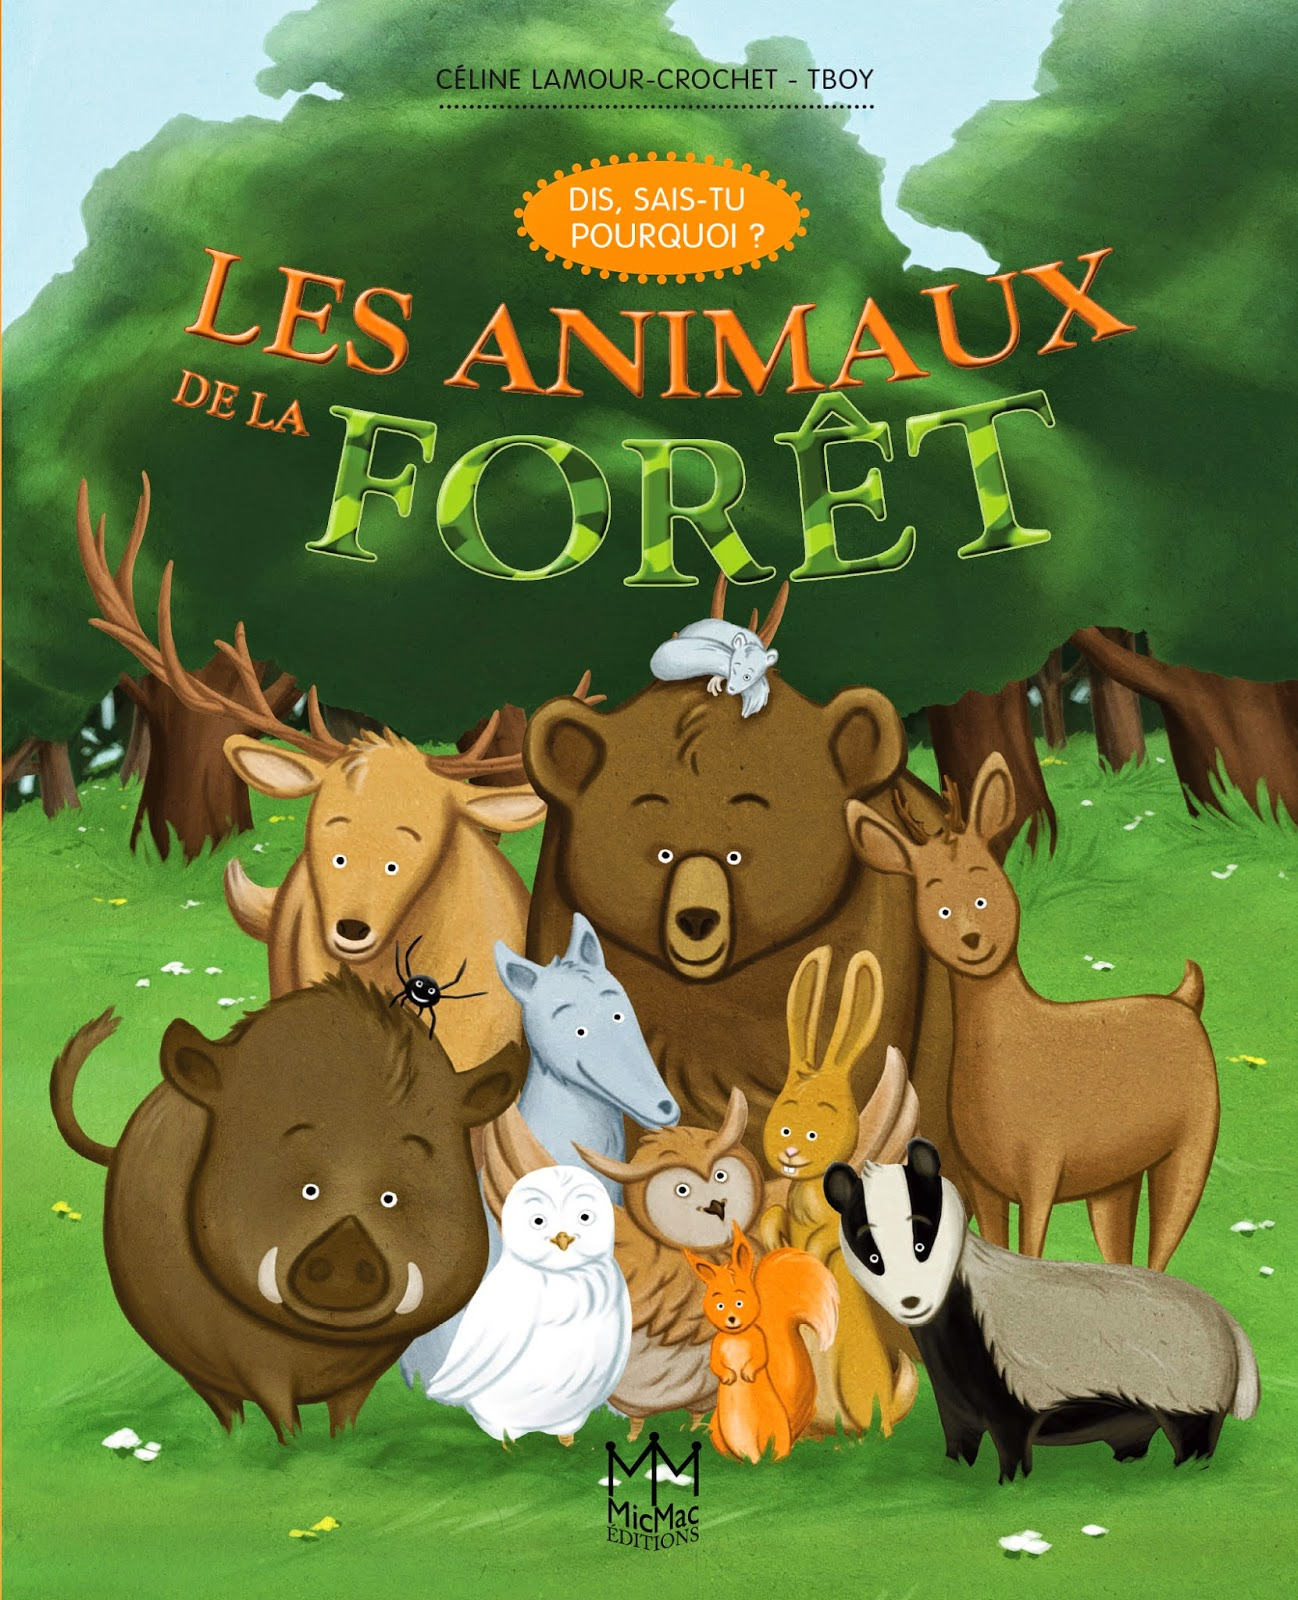 http://www.amazon.fr/animaux-for%C3%AAt-Dis-sais-tu-pourquoi/dp/236221284X/ref=sr_1_9?s=books&ie=UTF8&qid=1399107780&sr=1-9&keywords=c%C3%A9line+lamour-crochet